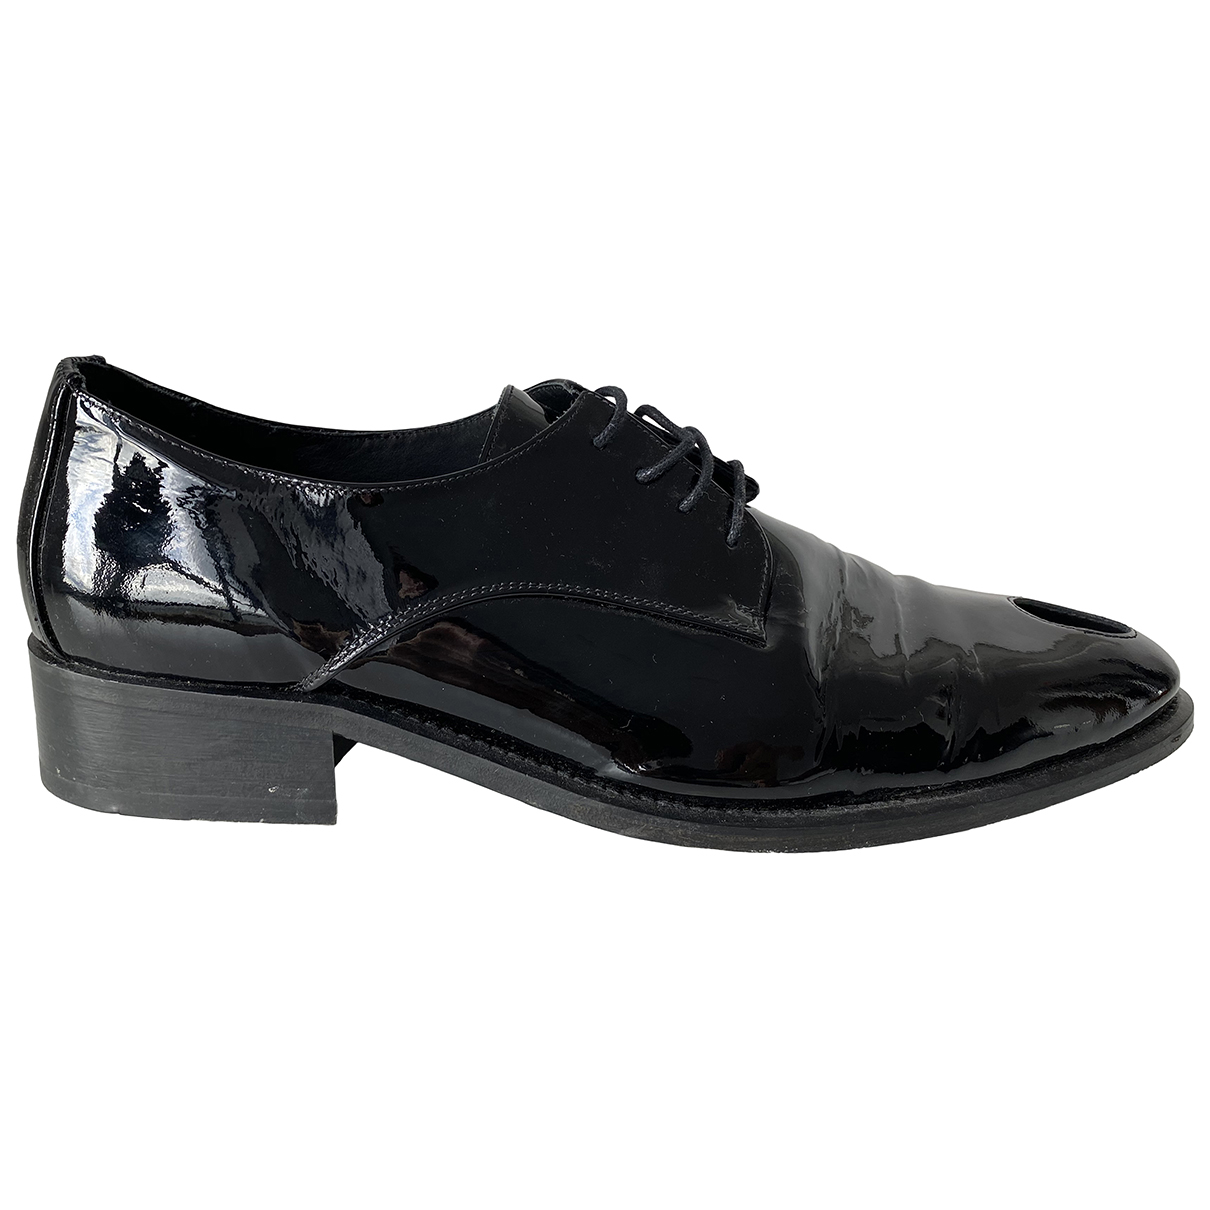 Martine Rose \N Black Patent leather Lace ups for Men 45 EU